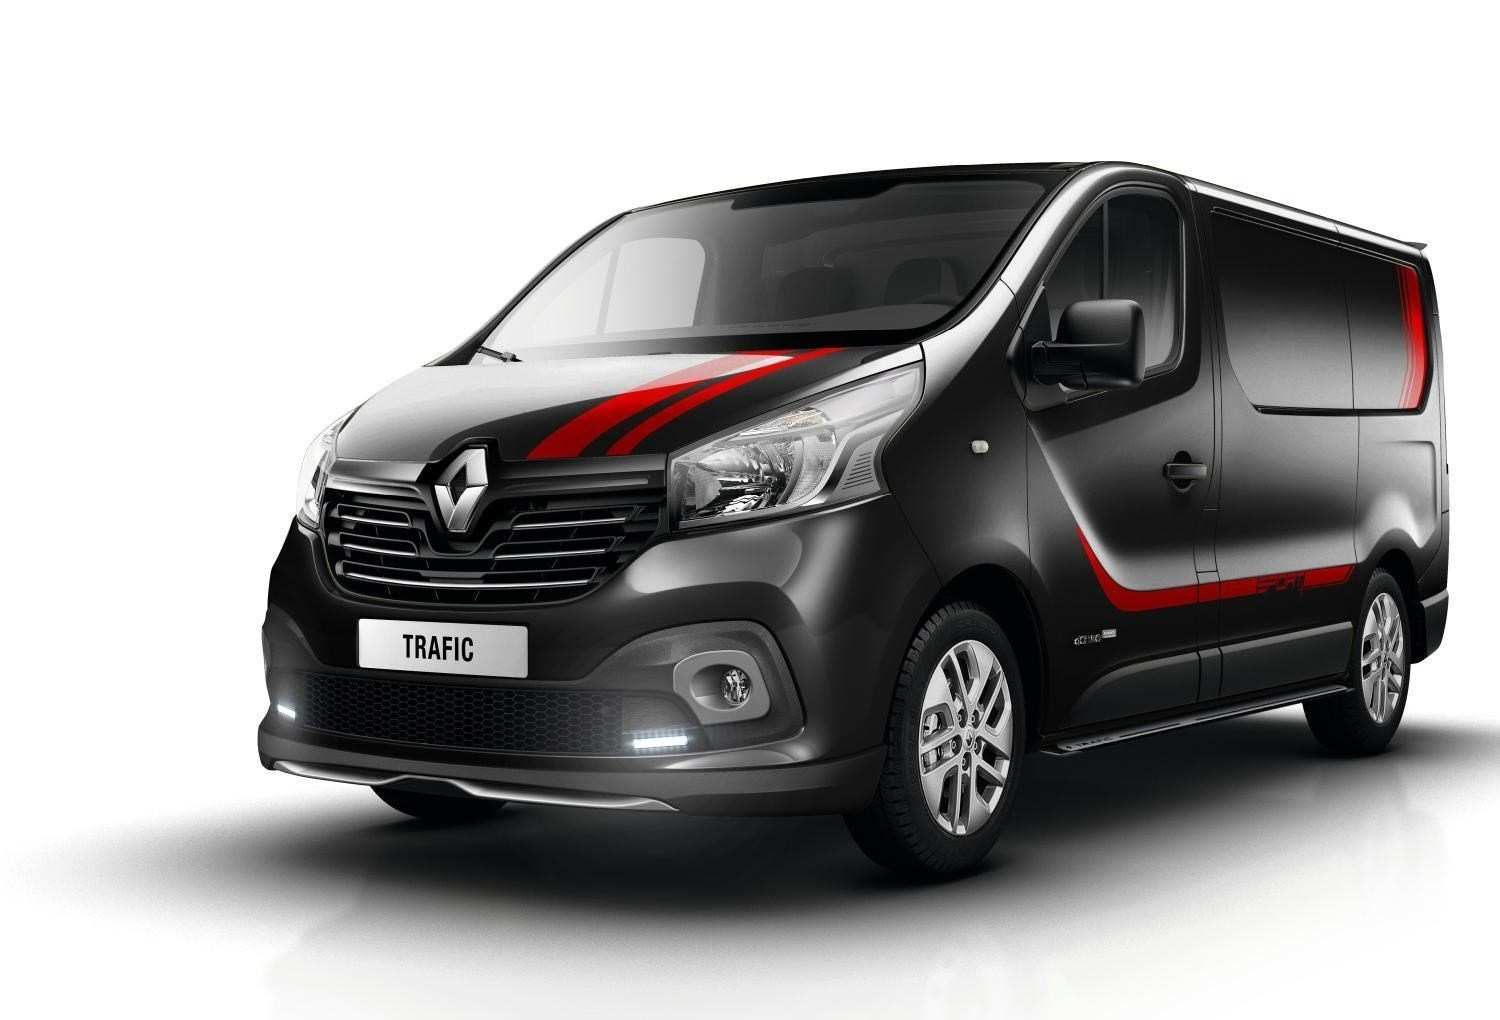 34 New 2020 Renault Trafic Speed Test by 2020 Renault Trafic